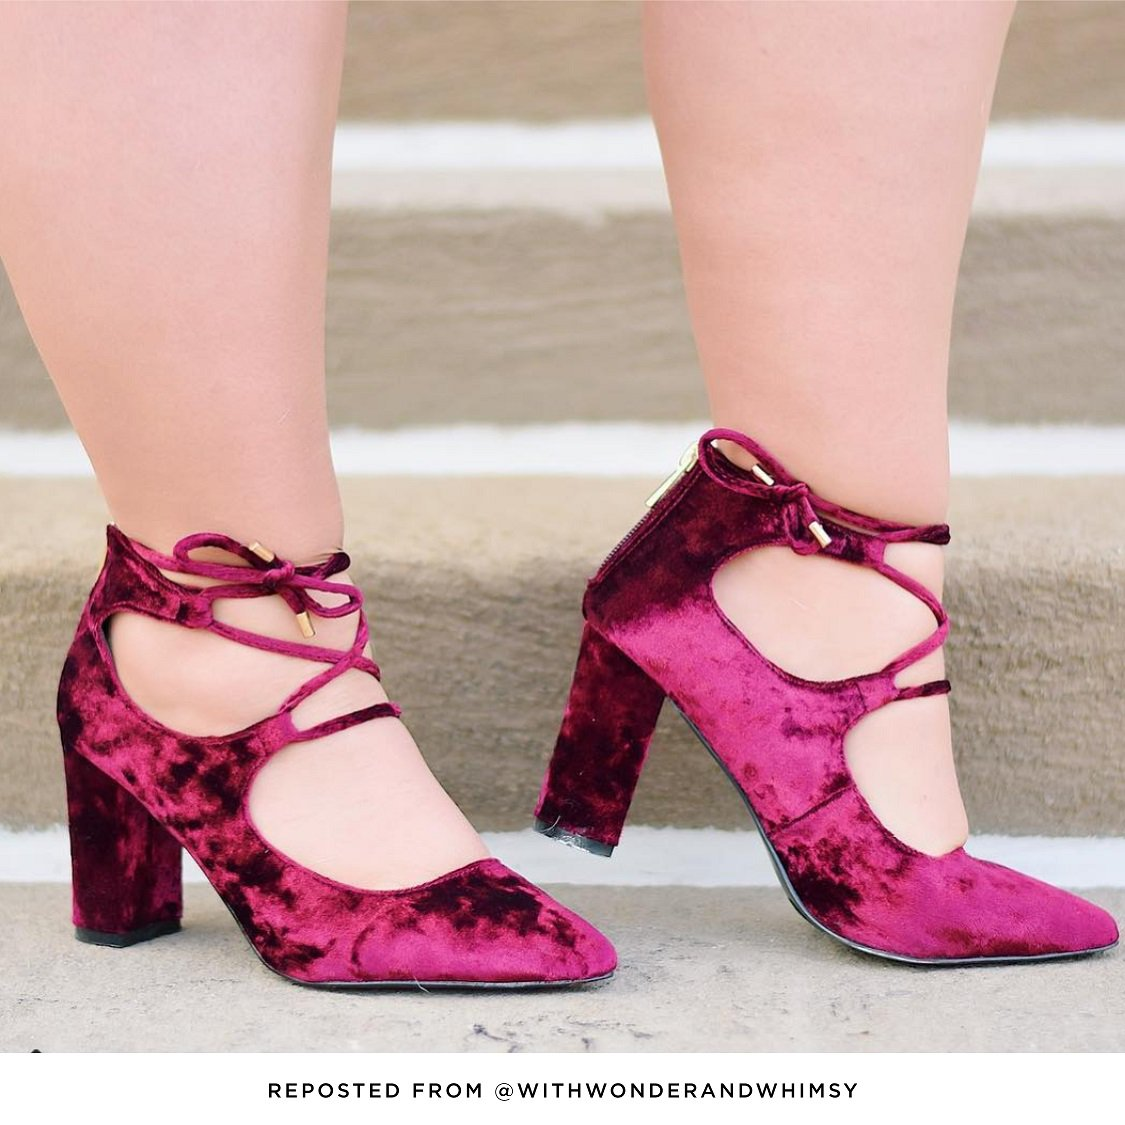 4d8e7f44bc0 Shop statement shoes like this pair featured by one of our favorite  bloggers